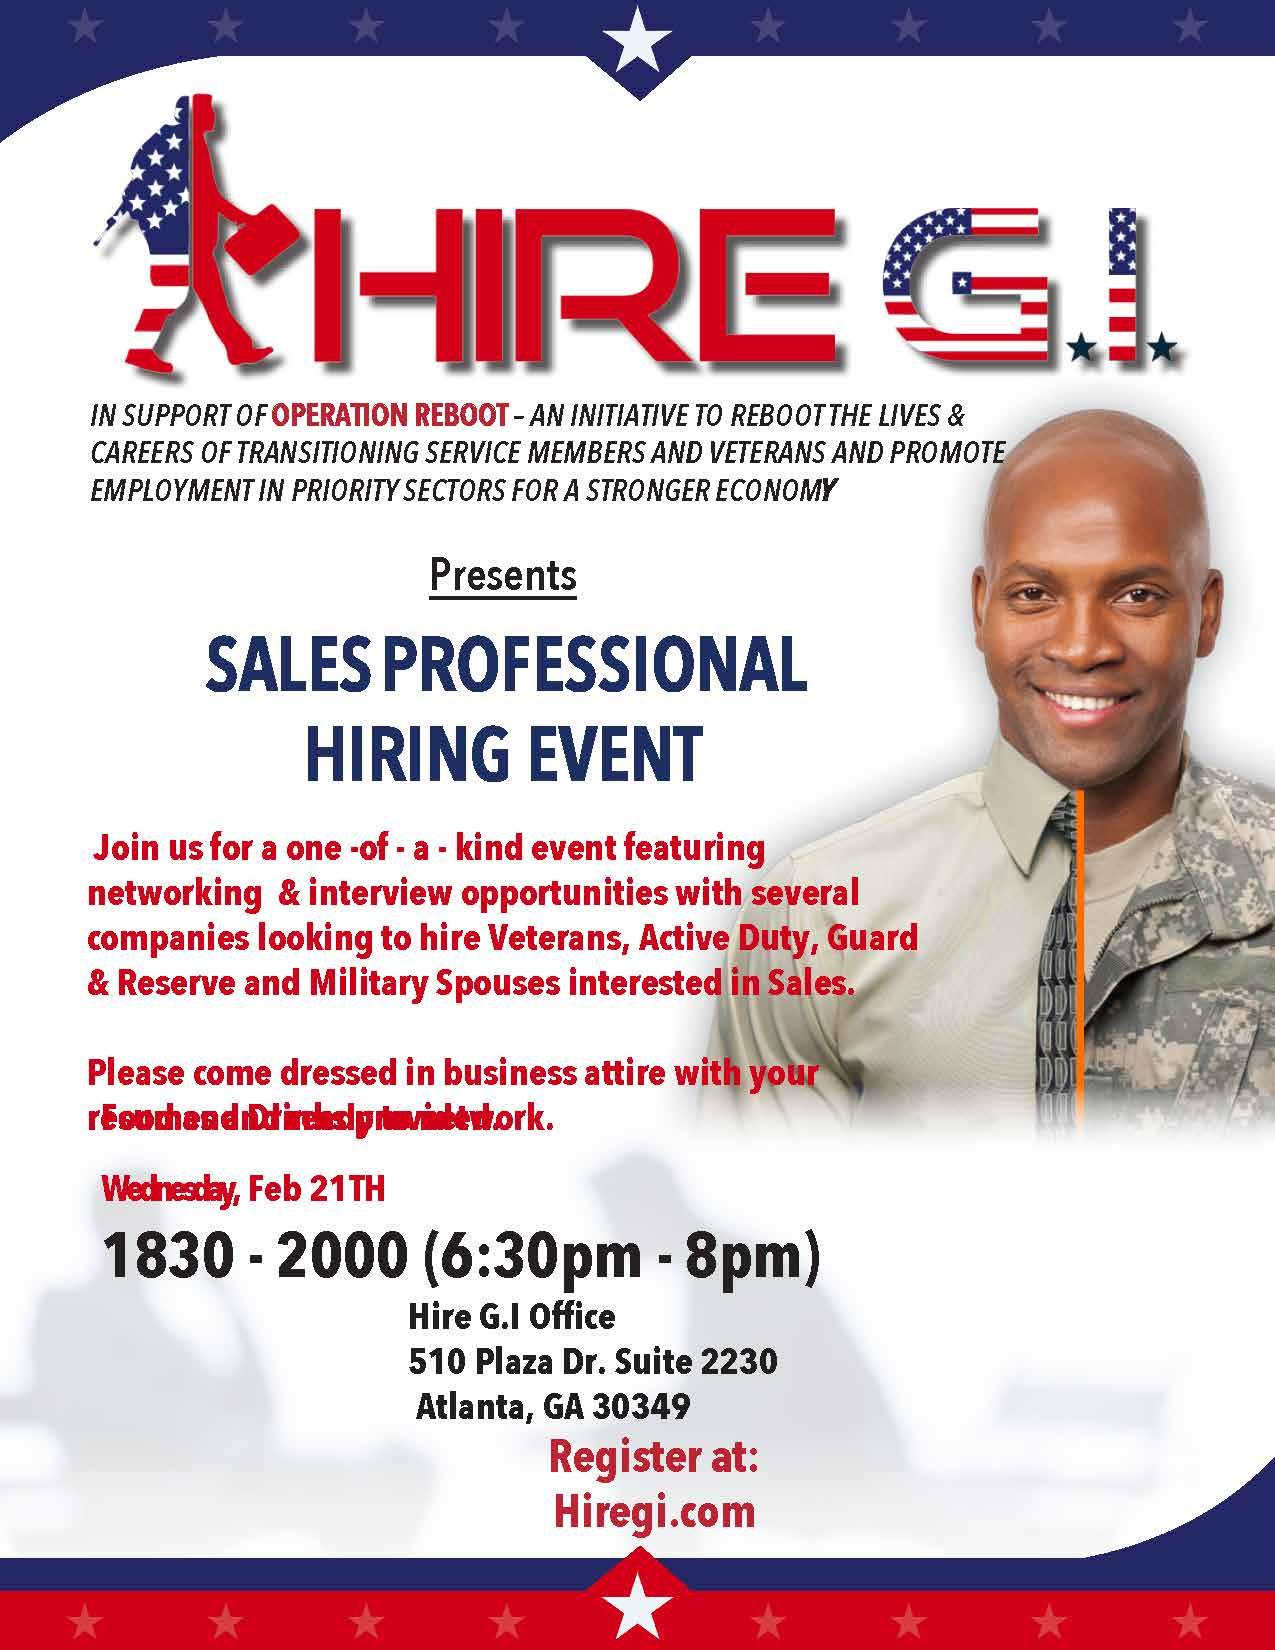 Sales Professionals Hiring Event For Military